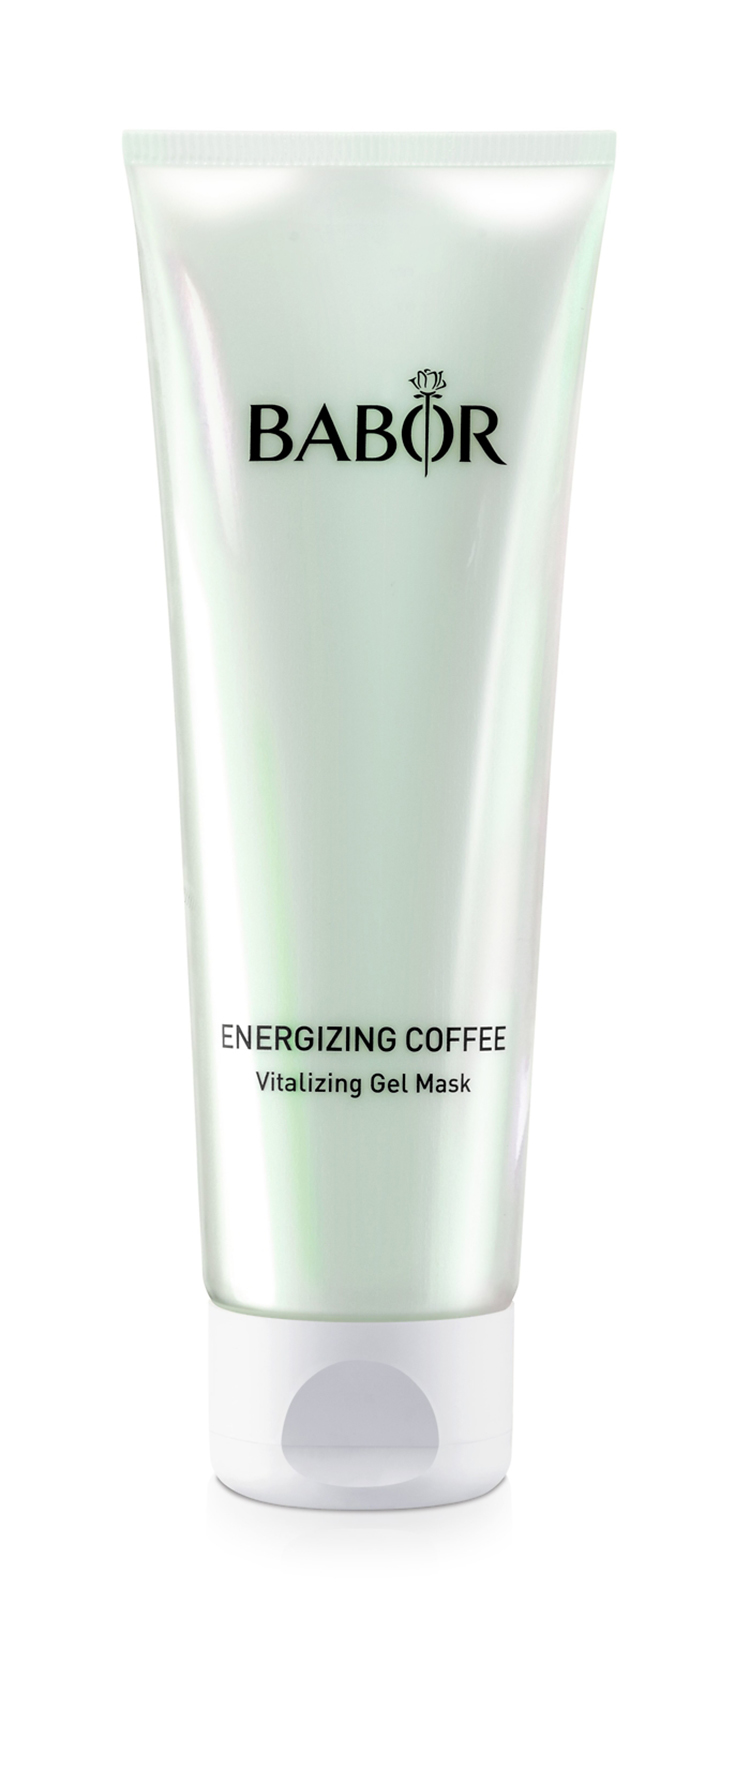 grüne Cremetube von babor energizing coffee vitalizing gel mask